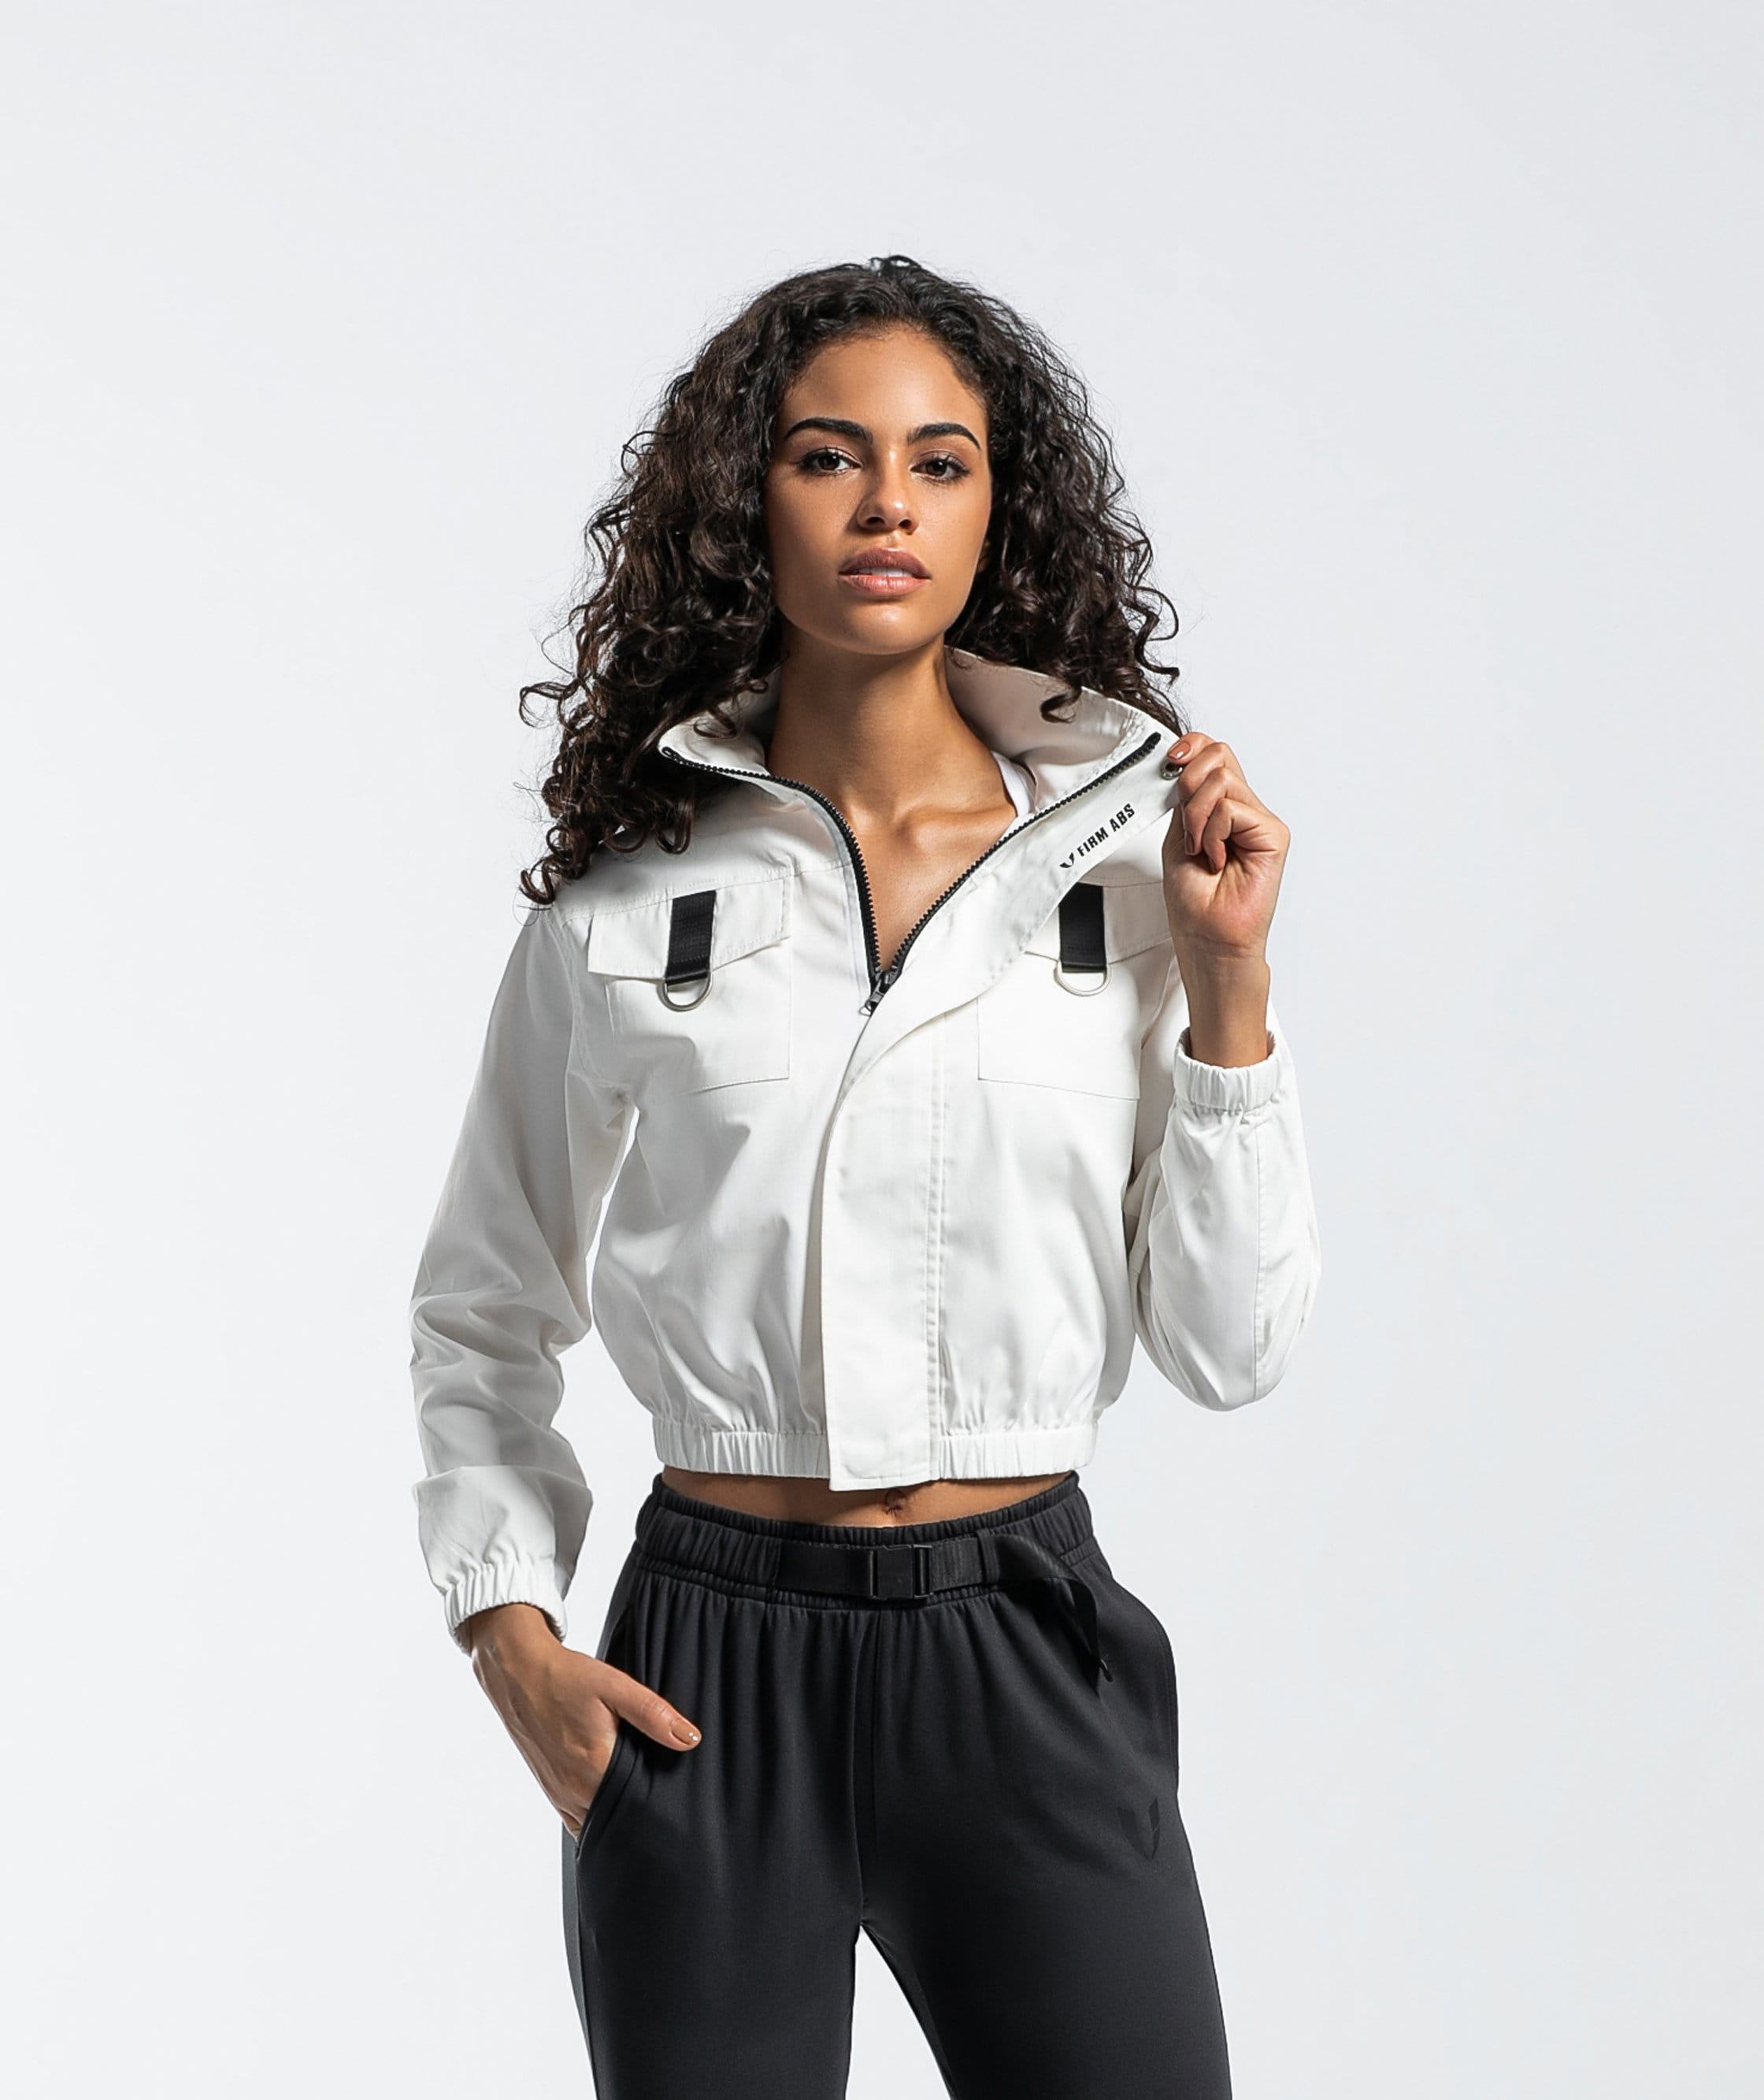 CARGO UTILITY TRACK JACKET - Firm Abs Fitness